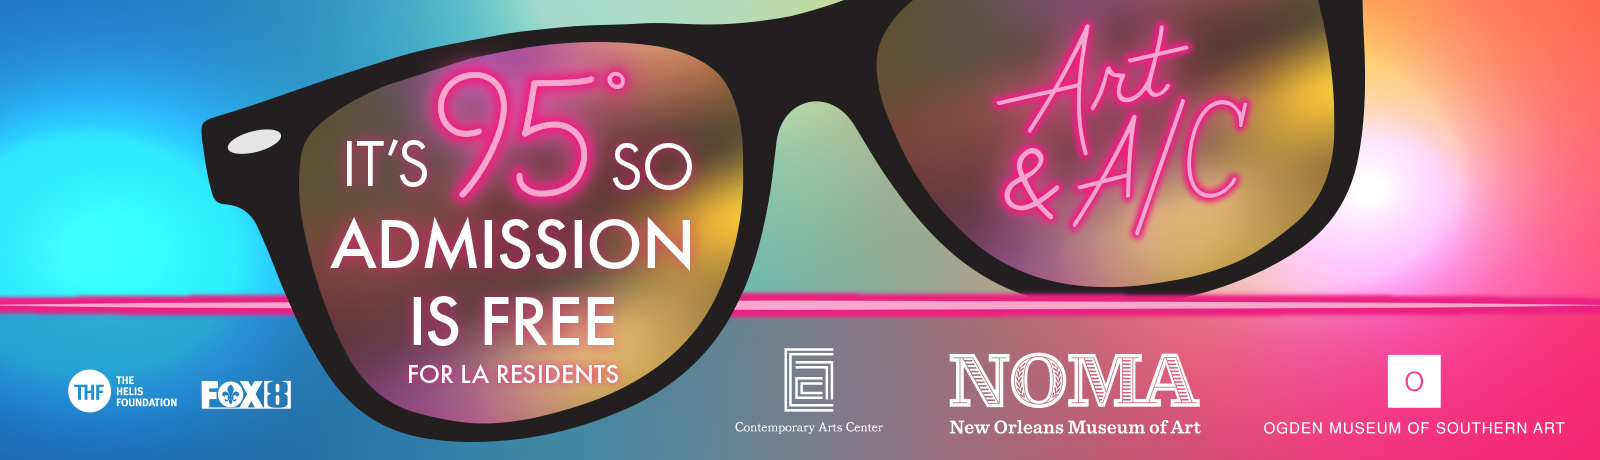 art and ac free admission to new orleans art institutions courtesy the helis foundation